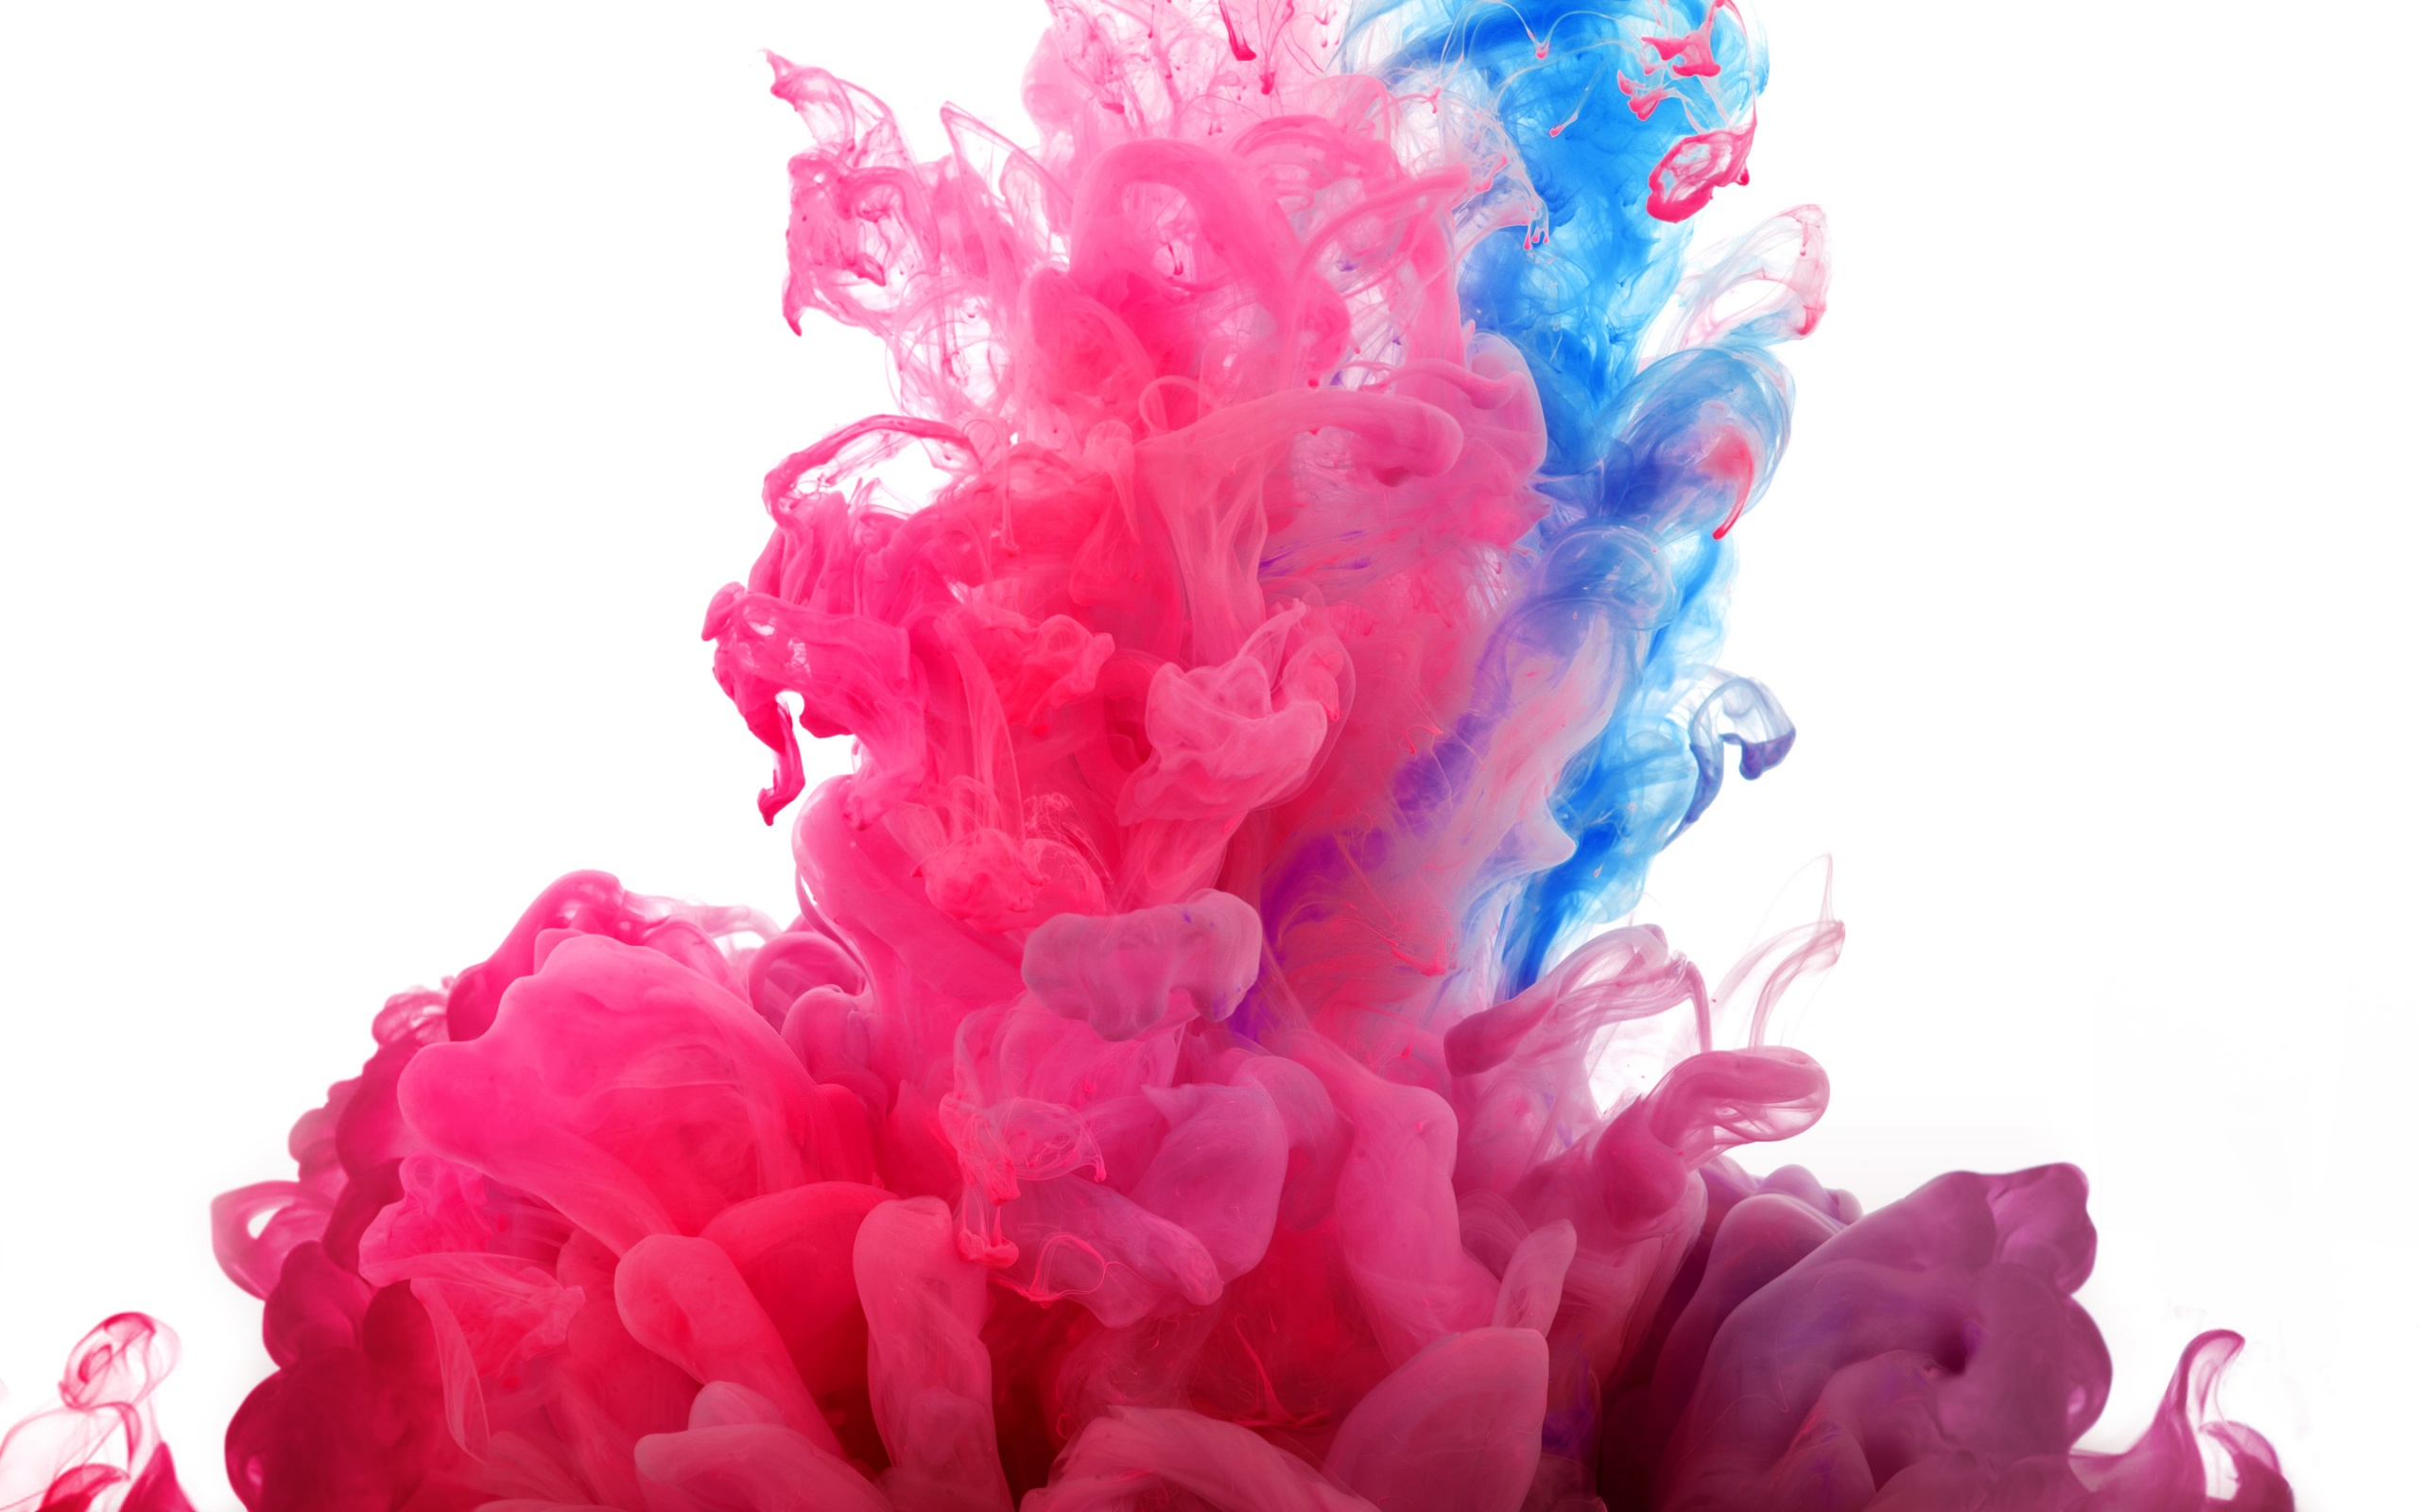 Colorful Smoke Wallpapers HD   HD Wallpapers Backgrounds 2560x1600